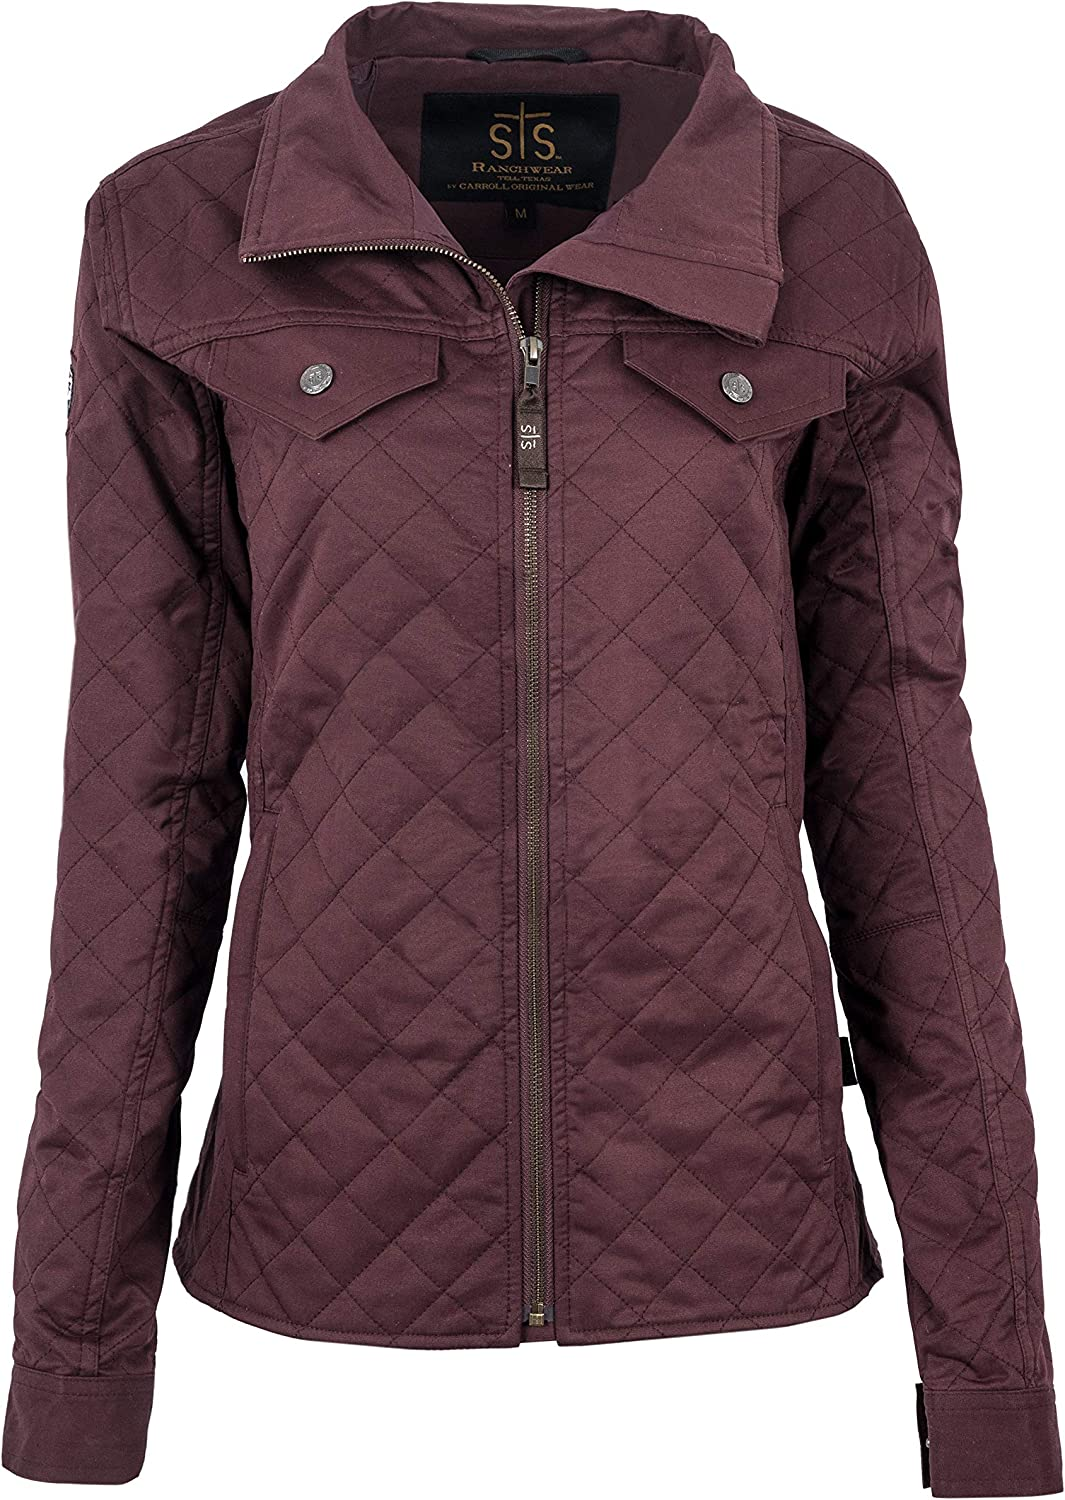 STS Ranchwear Womens Quilted Jacket with satin liner Plum Small